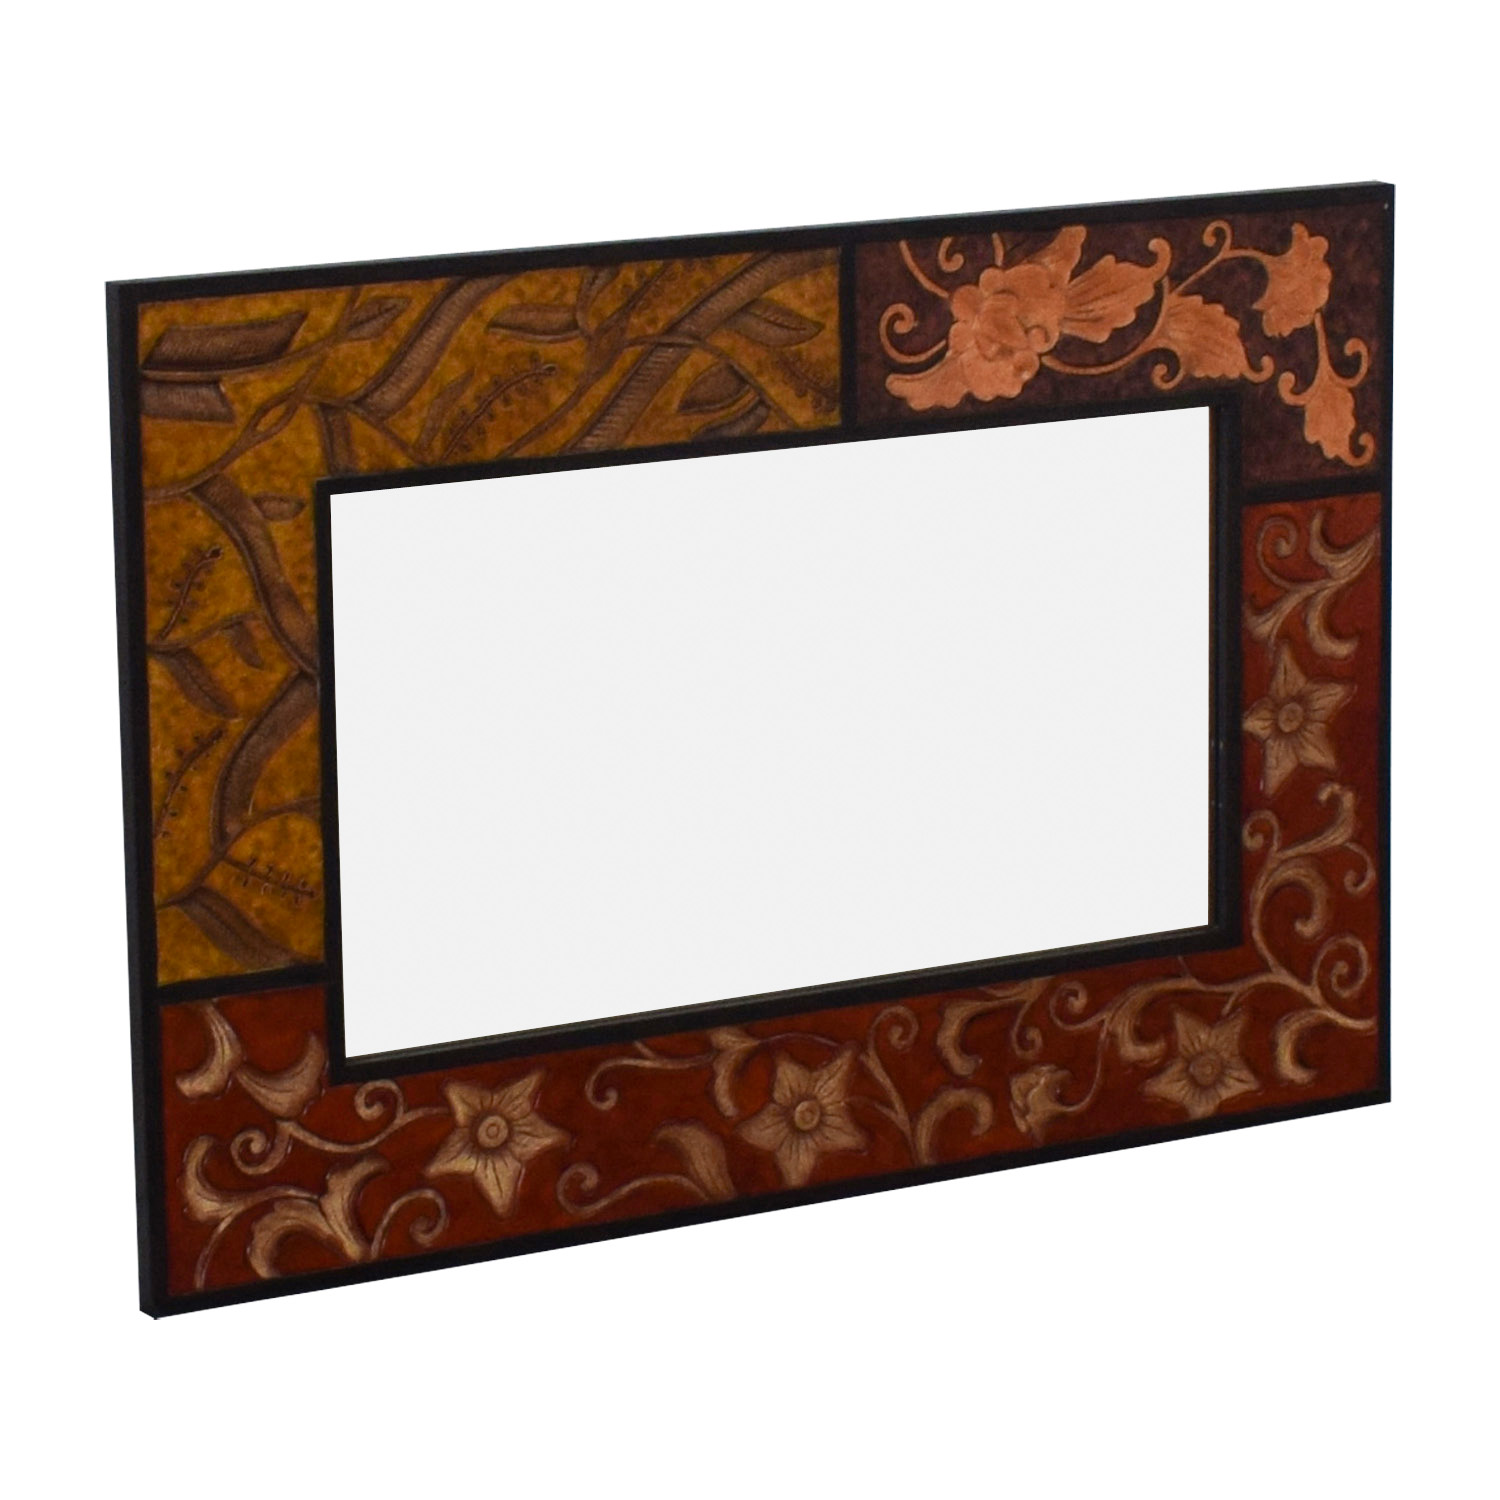 shop Pier 1 Pier 1 Panel Carved Decorative Mirror online